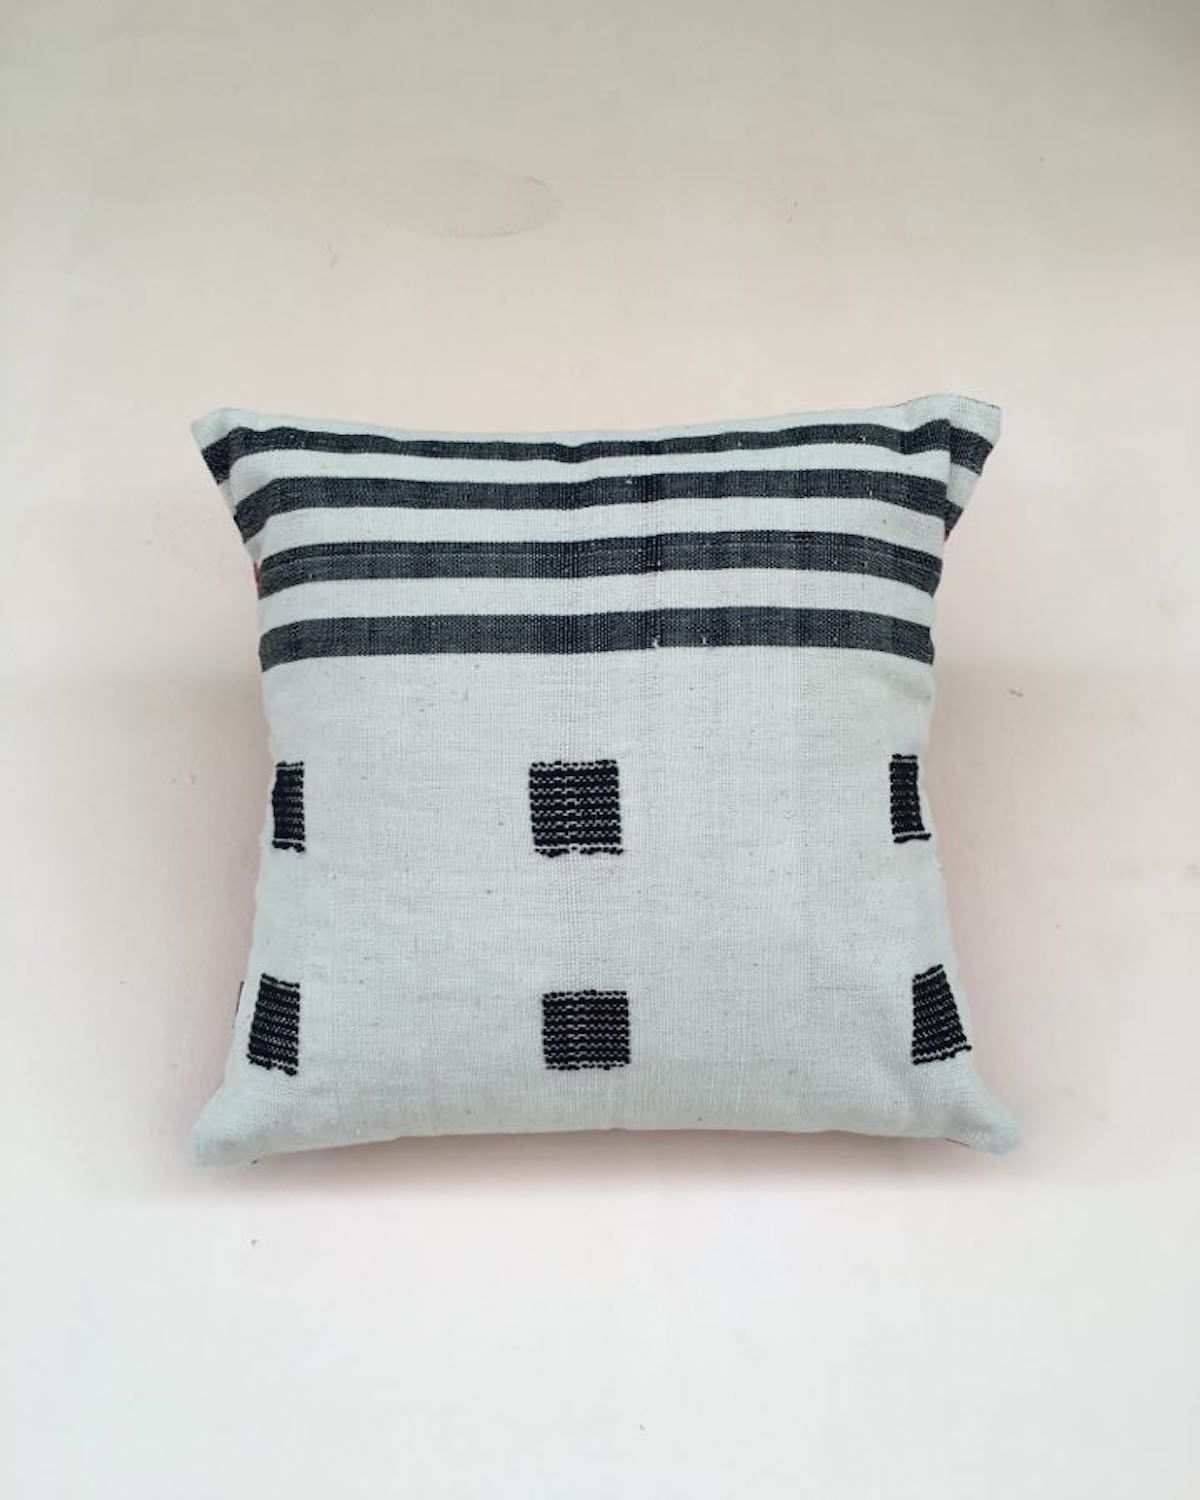 White Abstract Cushion Cover | Myanmar Chin State Textiles - YGN Collective